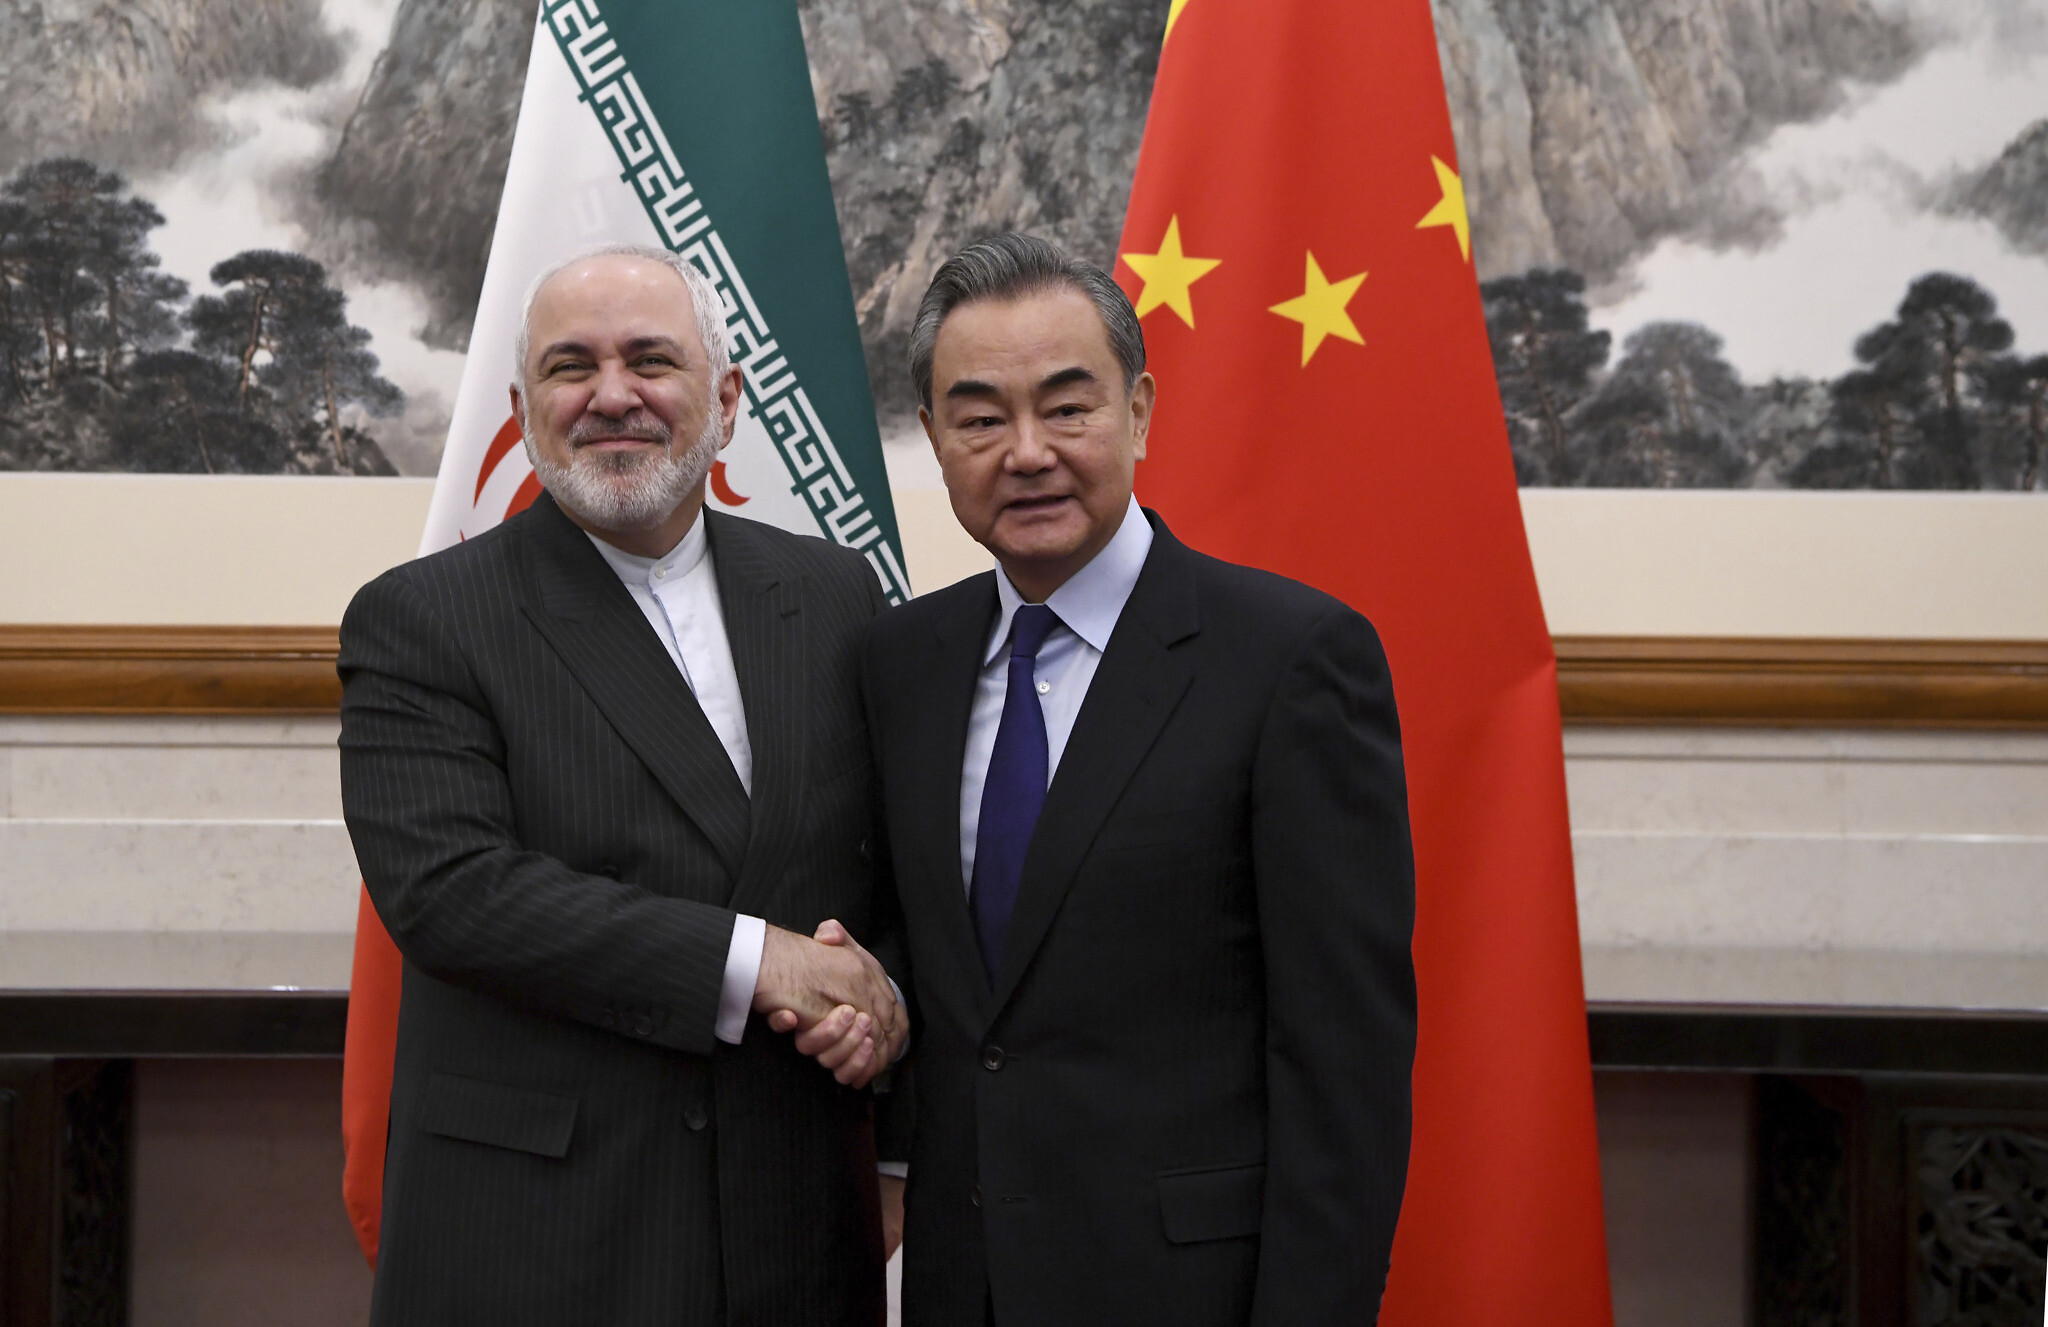 Iran set to sign 25-year 'strategic accord' with China during FM's visit   The Times of Israel